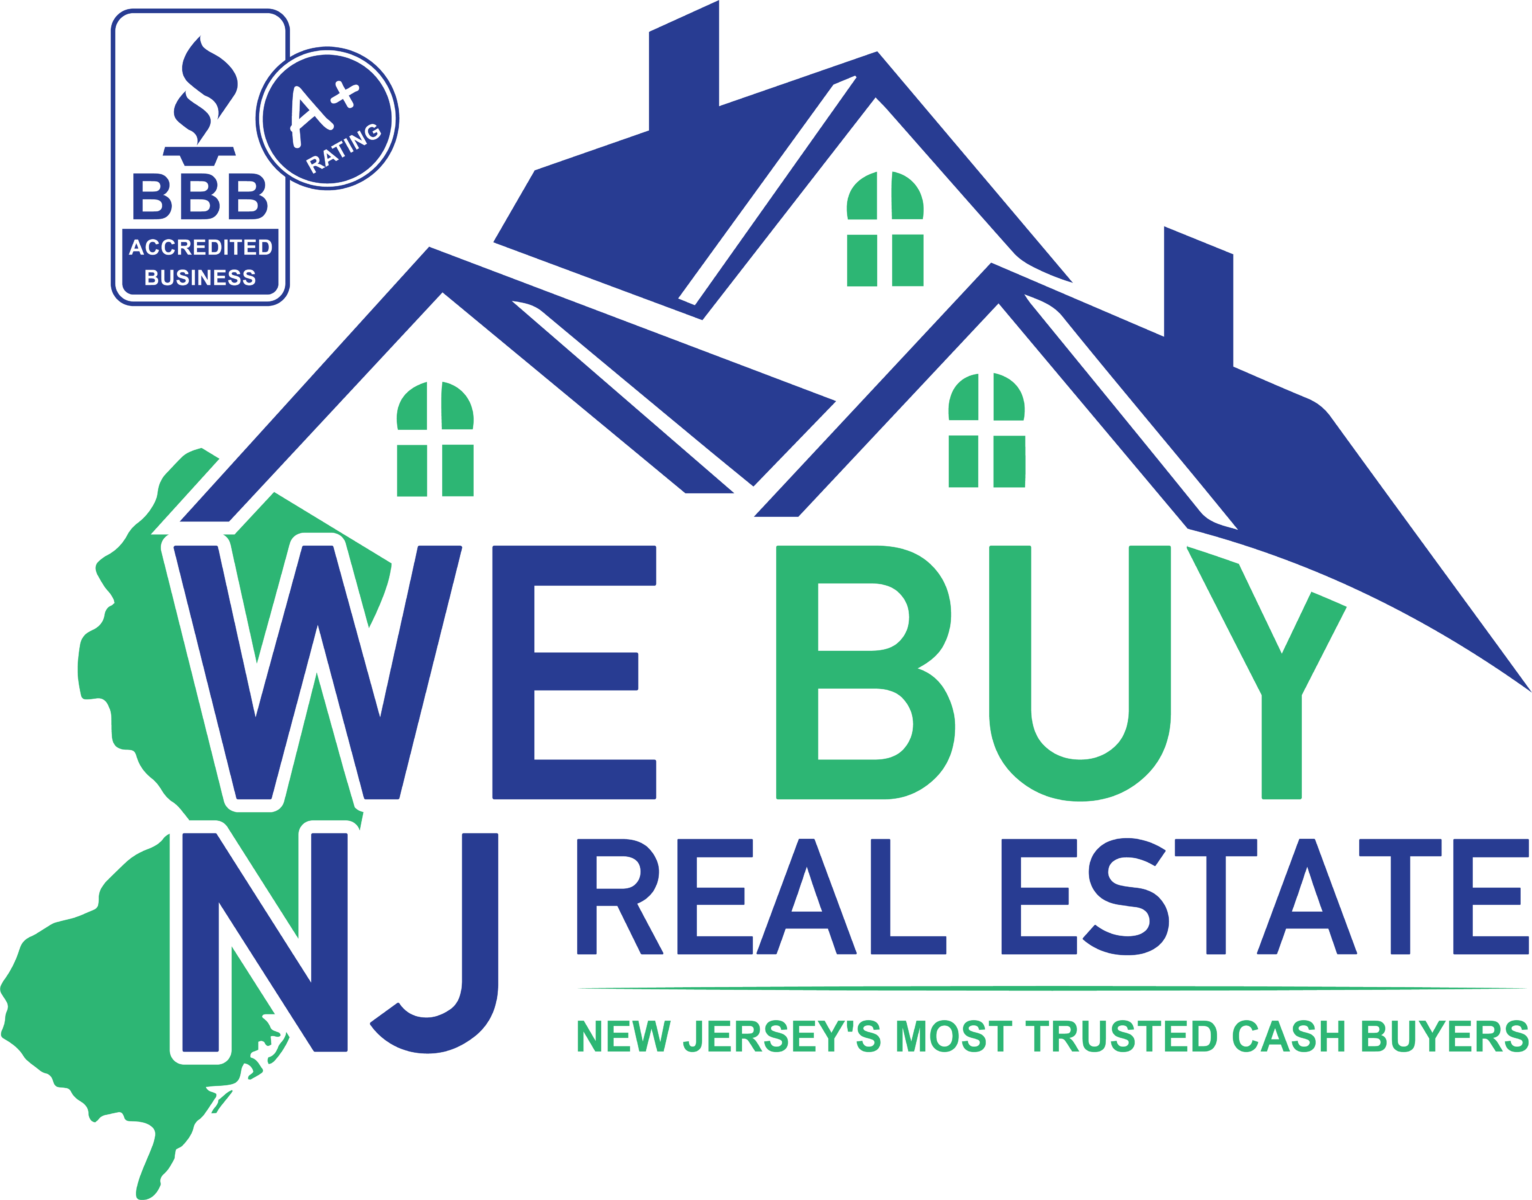 We Buy NJ Real Estate logo